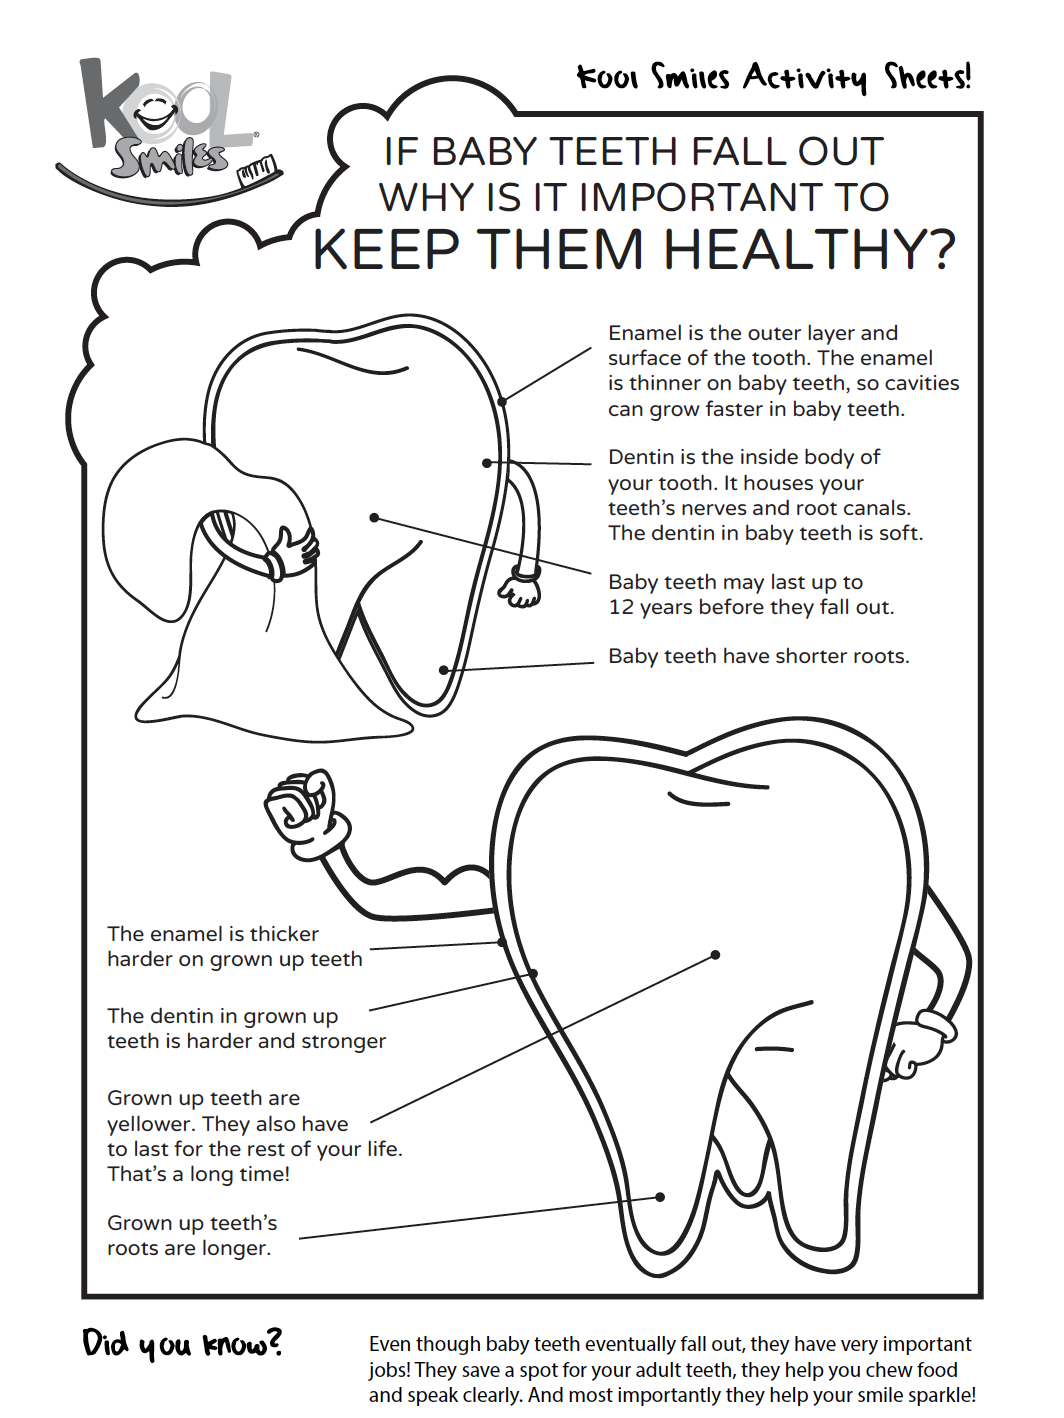 Even Though Baby Teeth Fall Out Eventually It Is Important To Keep Them Healthy Color This Kool Smiles Activity Sheet With Baby Dental Baby Teeth Oral Health